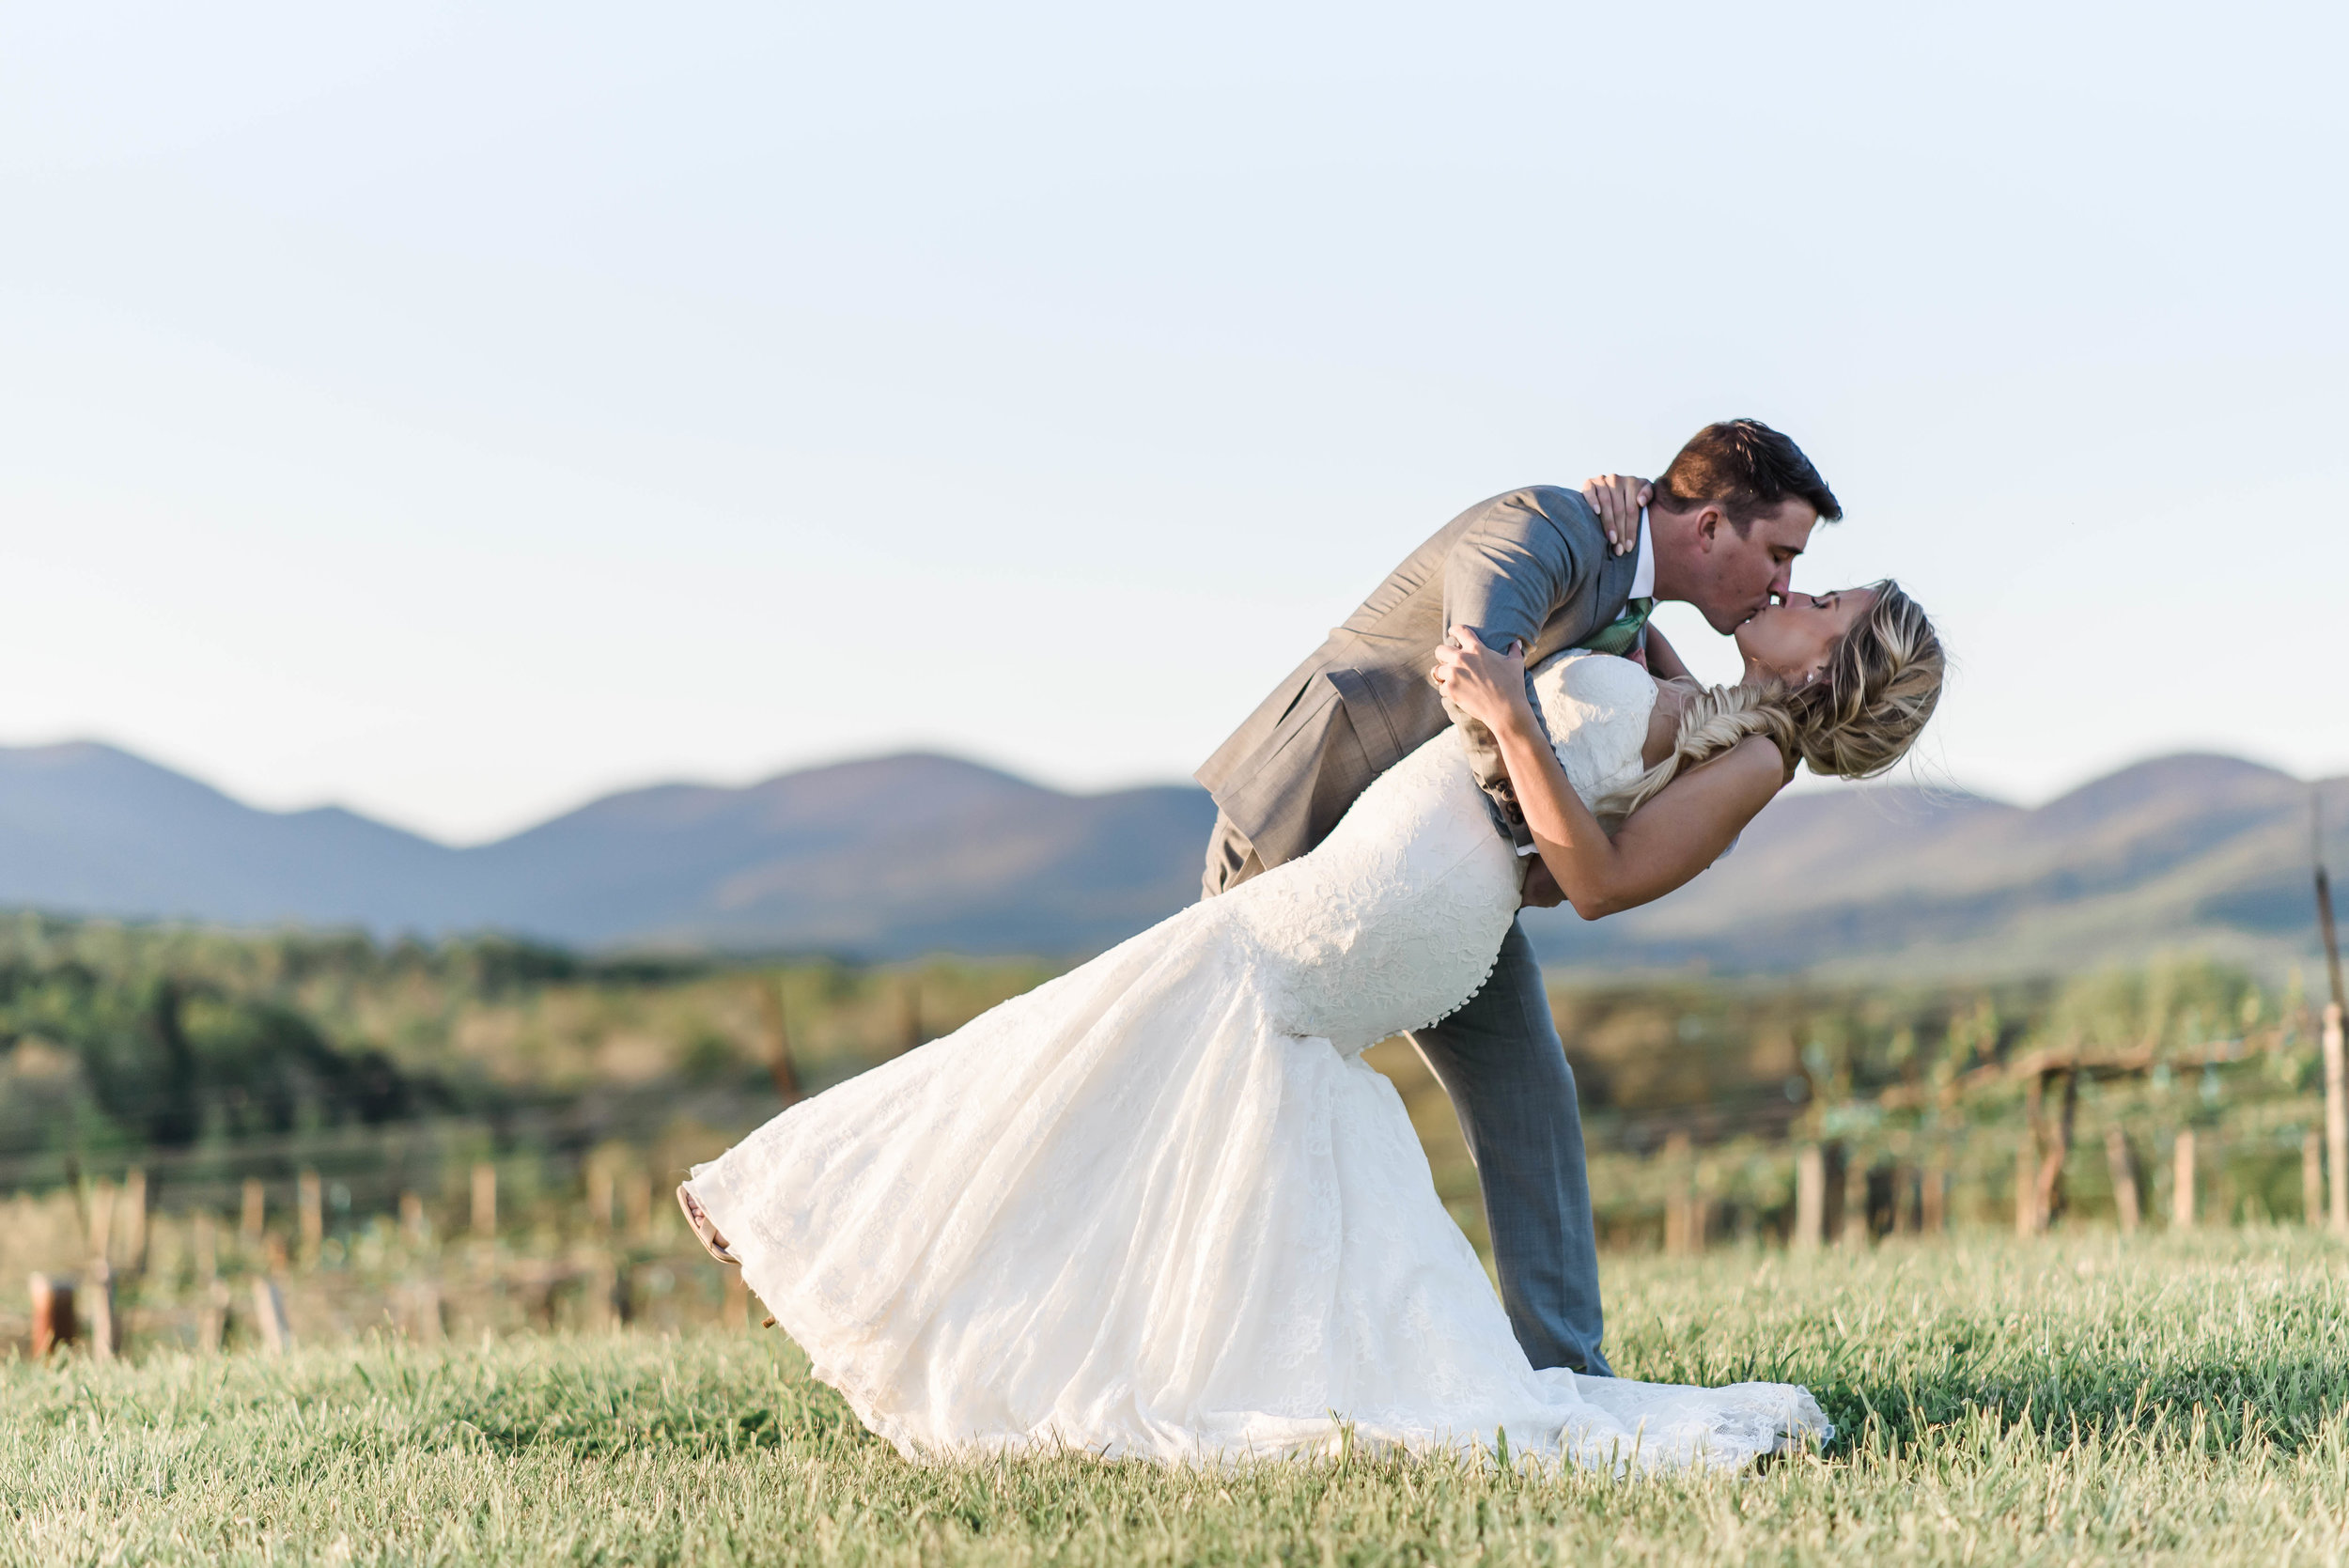 weddings - To capture the authenticity of your unique love story…